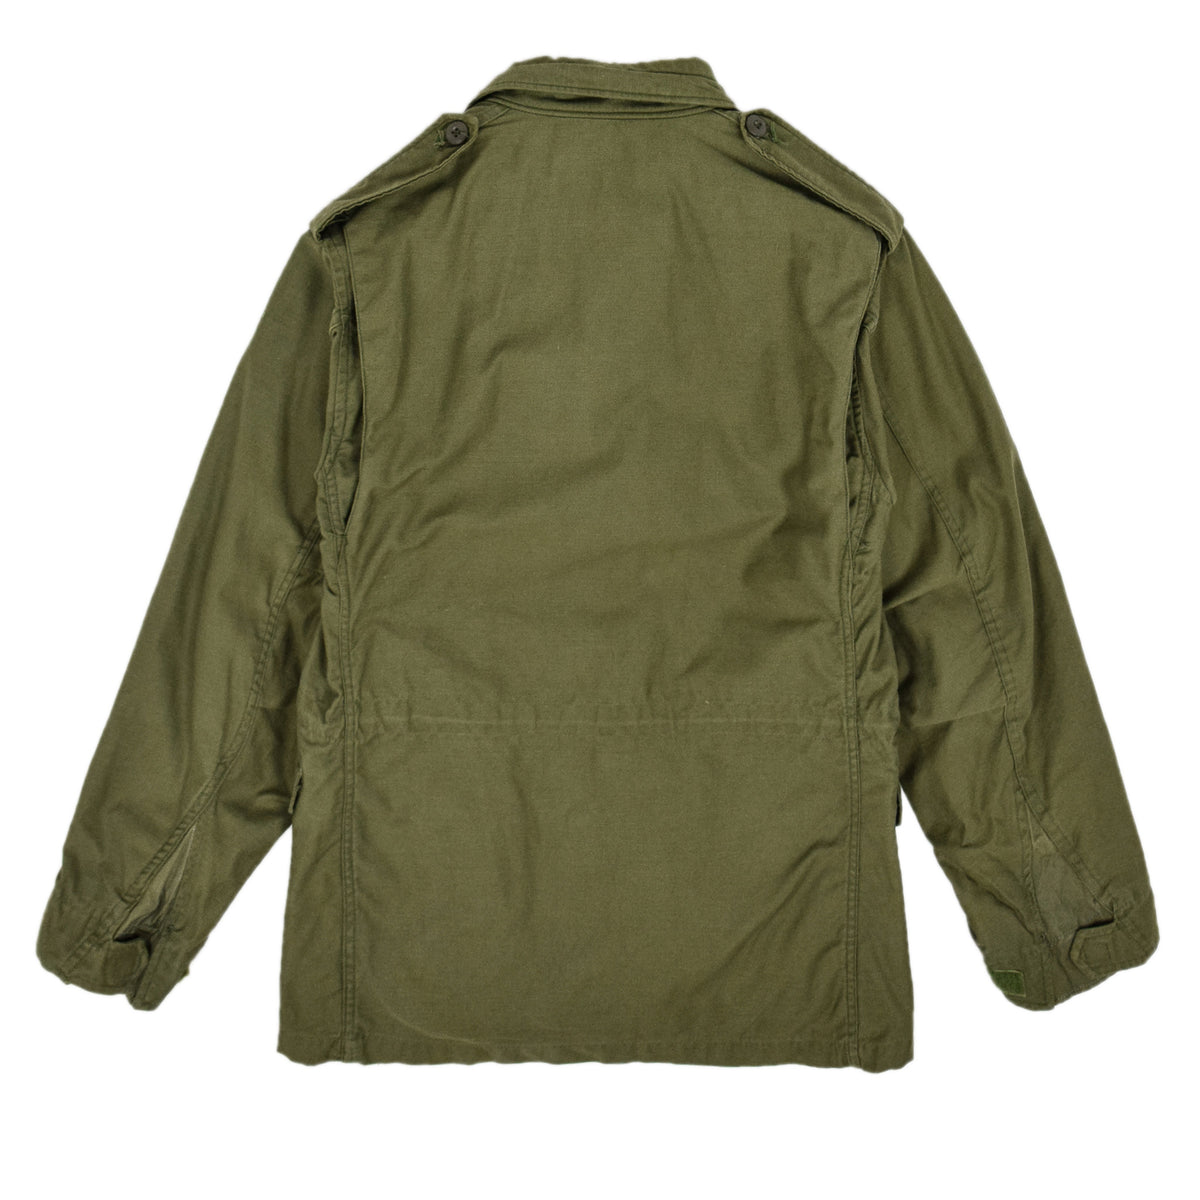 Vintage 60s Vietnam M-65 Man's Field Sateen 0G-107 Green US Army Coat S back